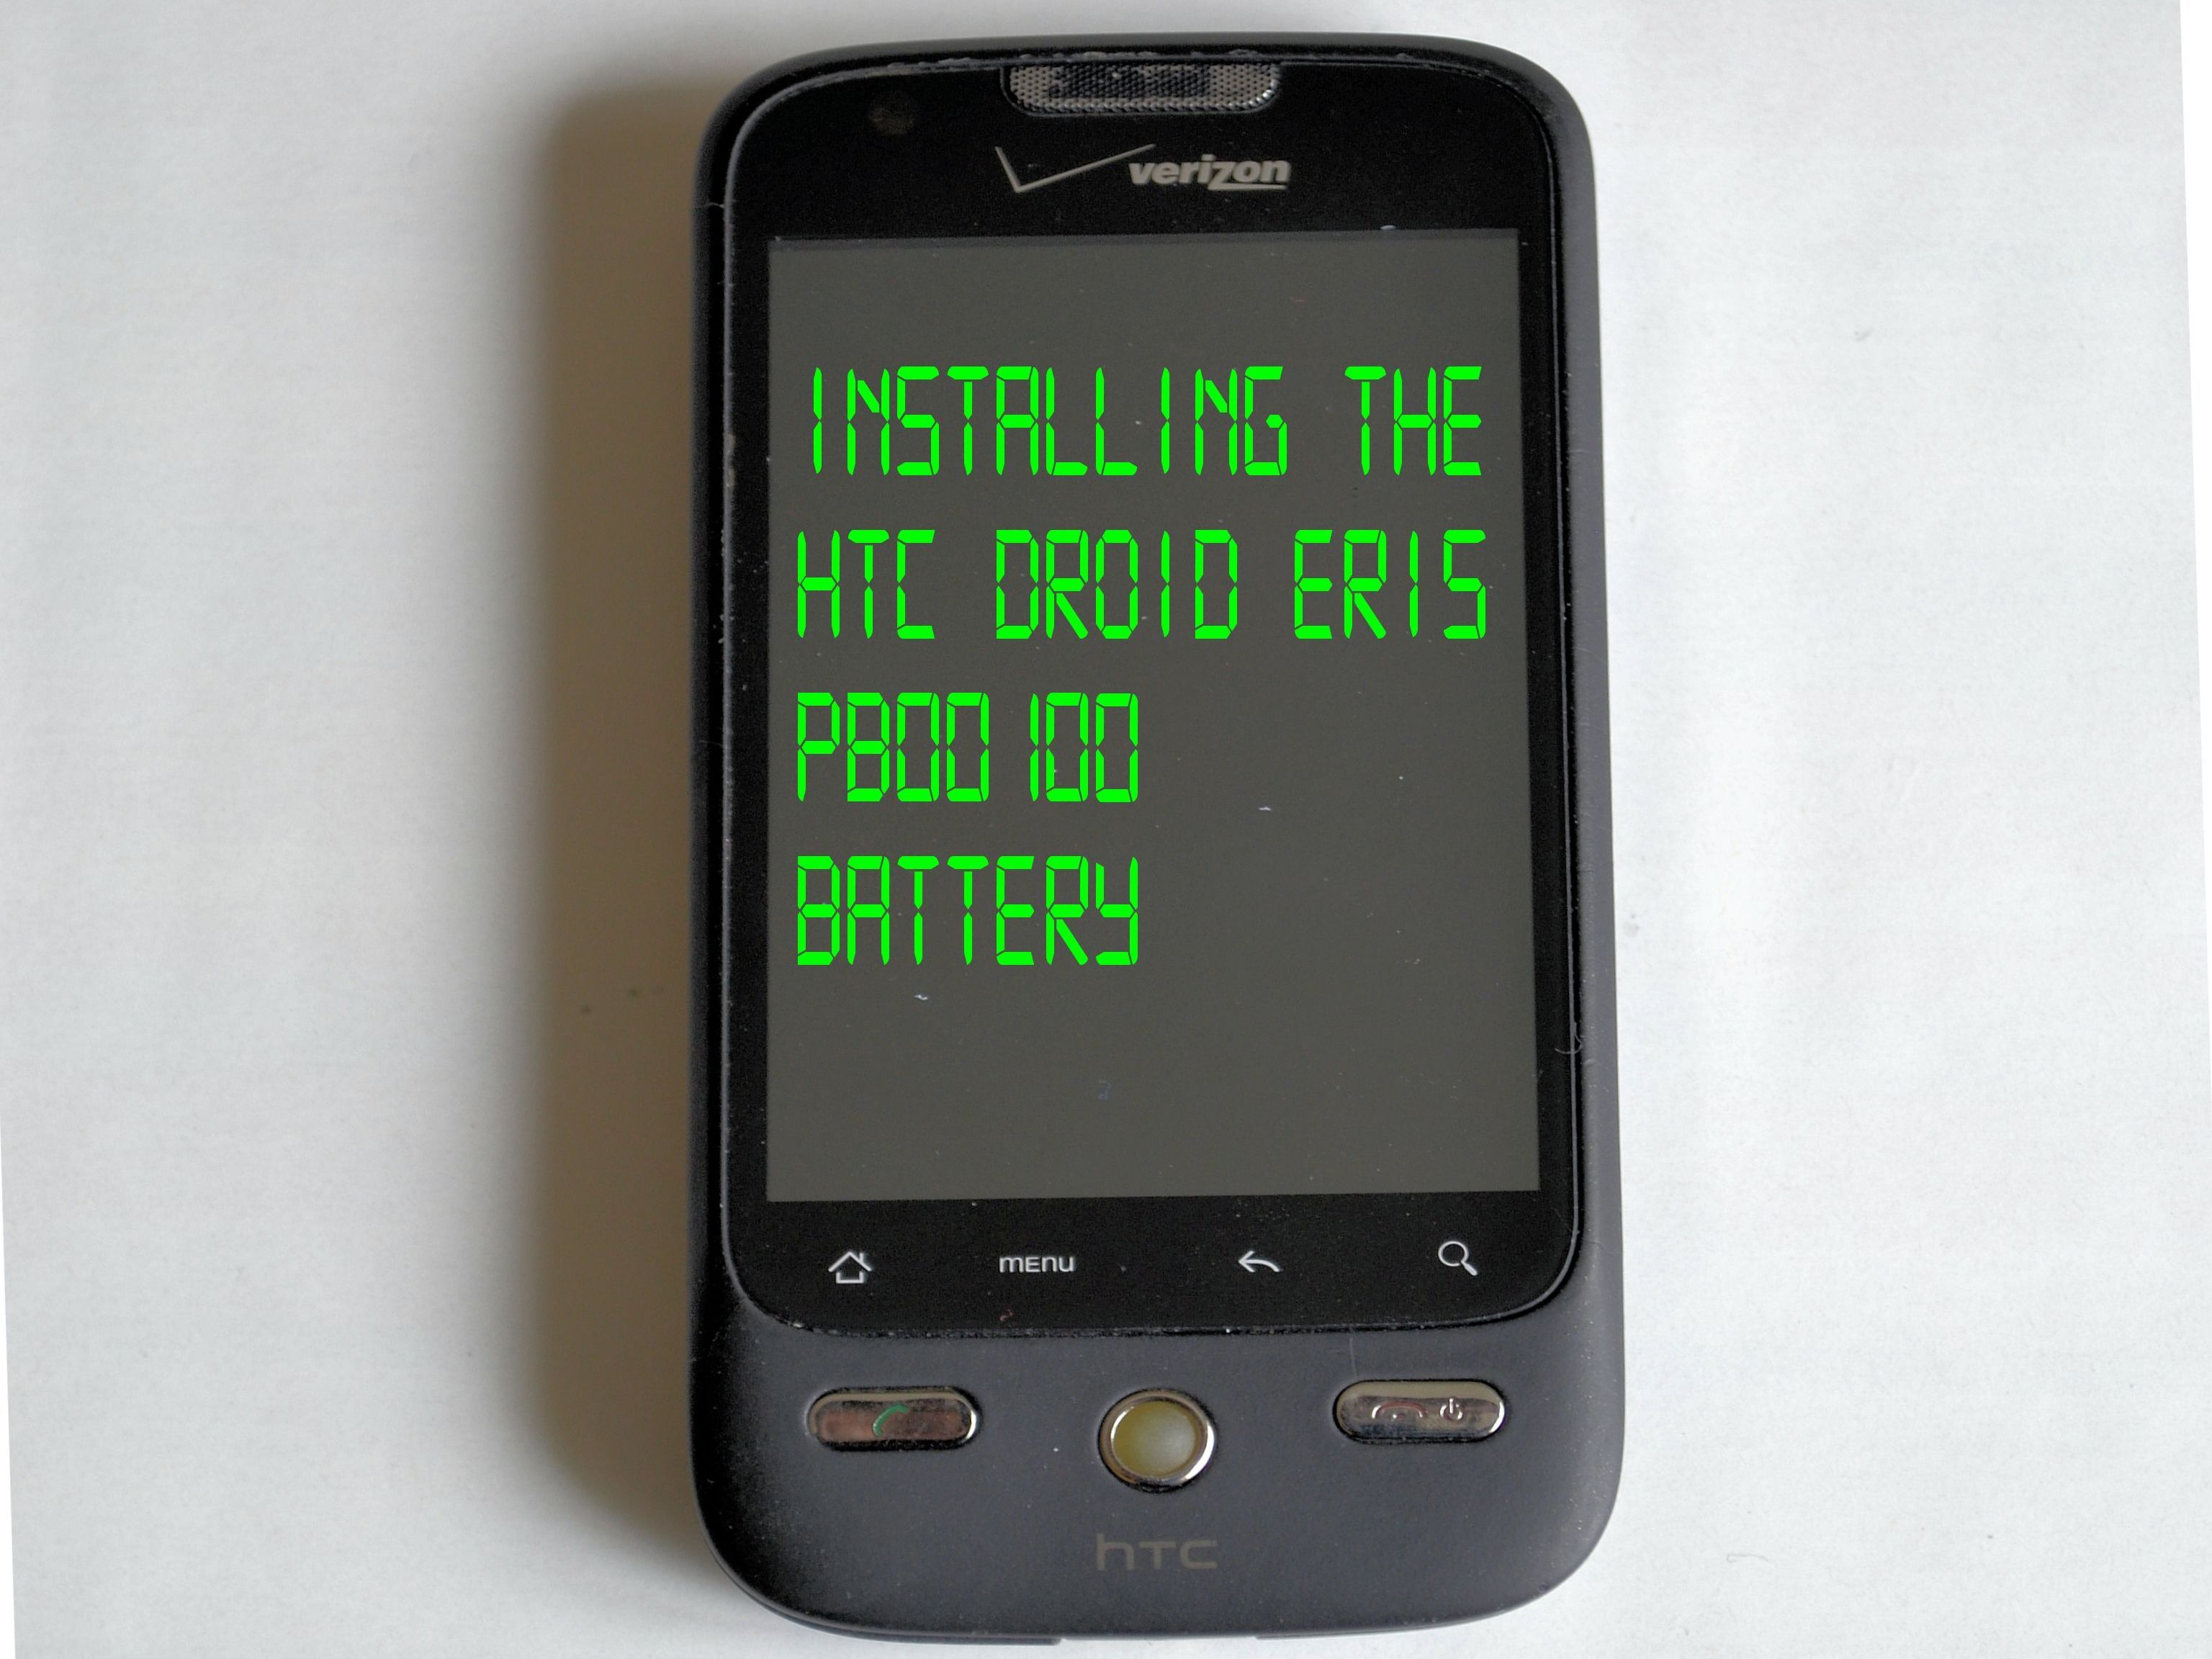 Htc droid incredible 2 adr6350 user manual.